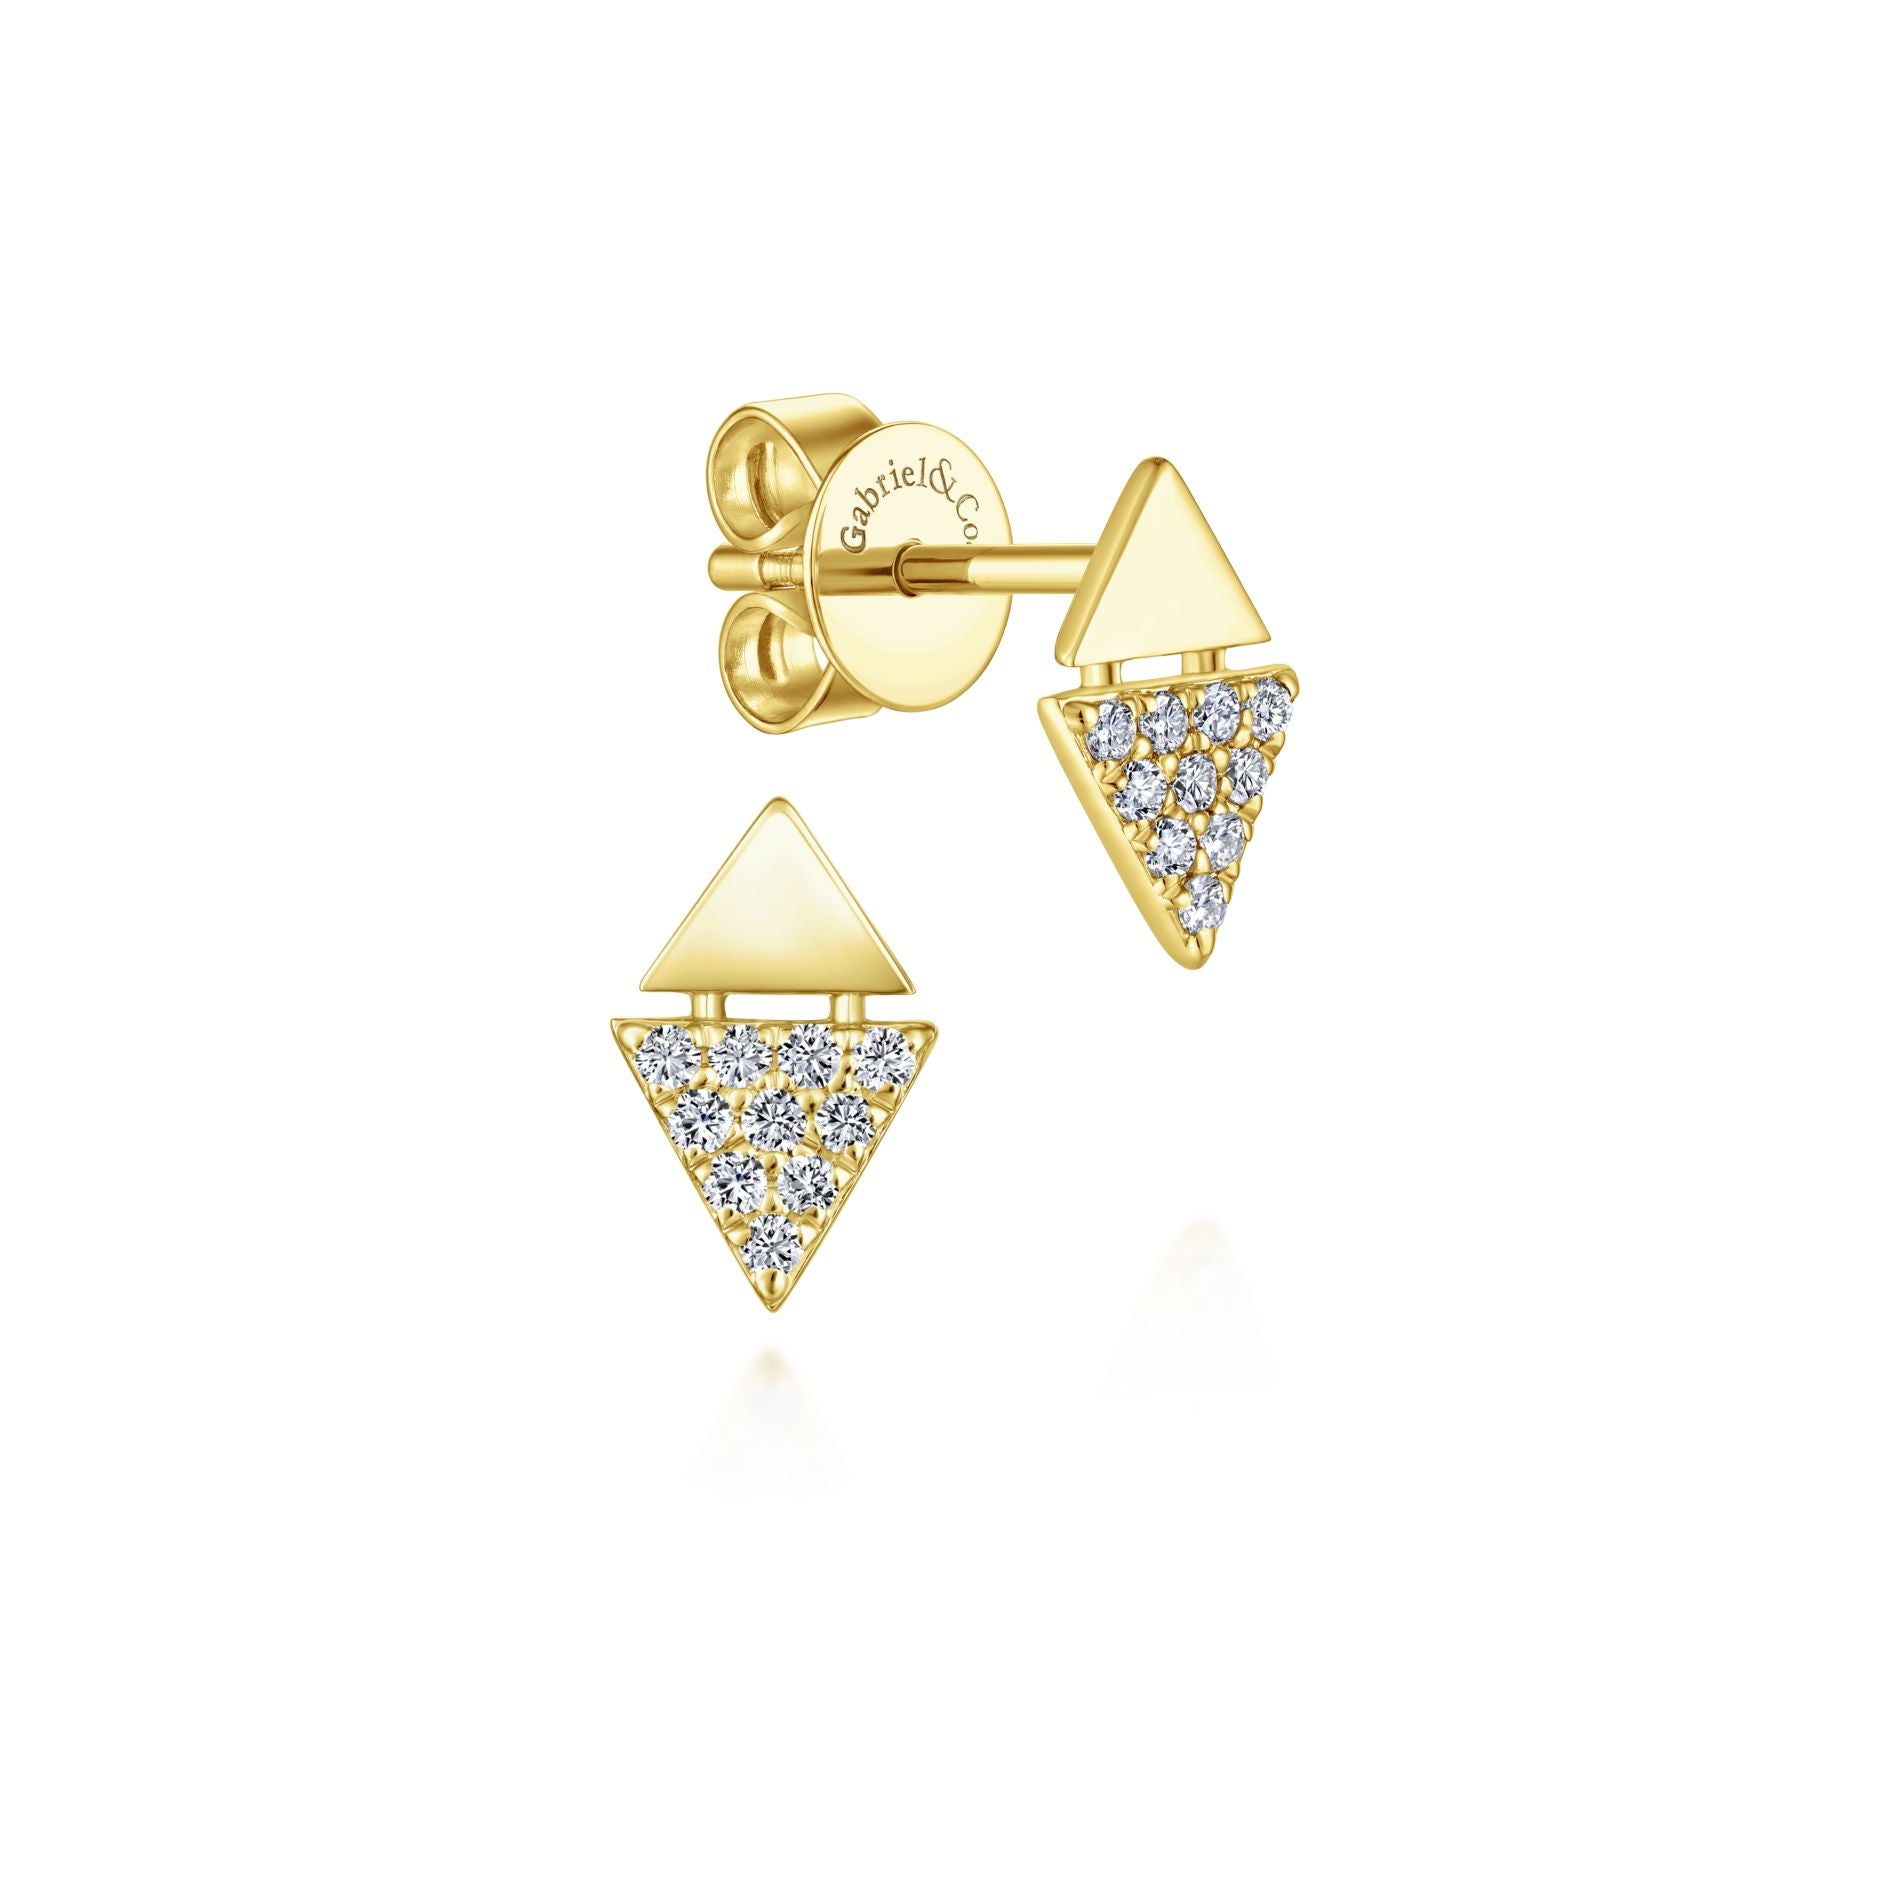 Stacked Triangle Pavé Diamond Stud Earrings in Yellow Gold